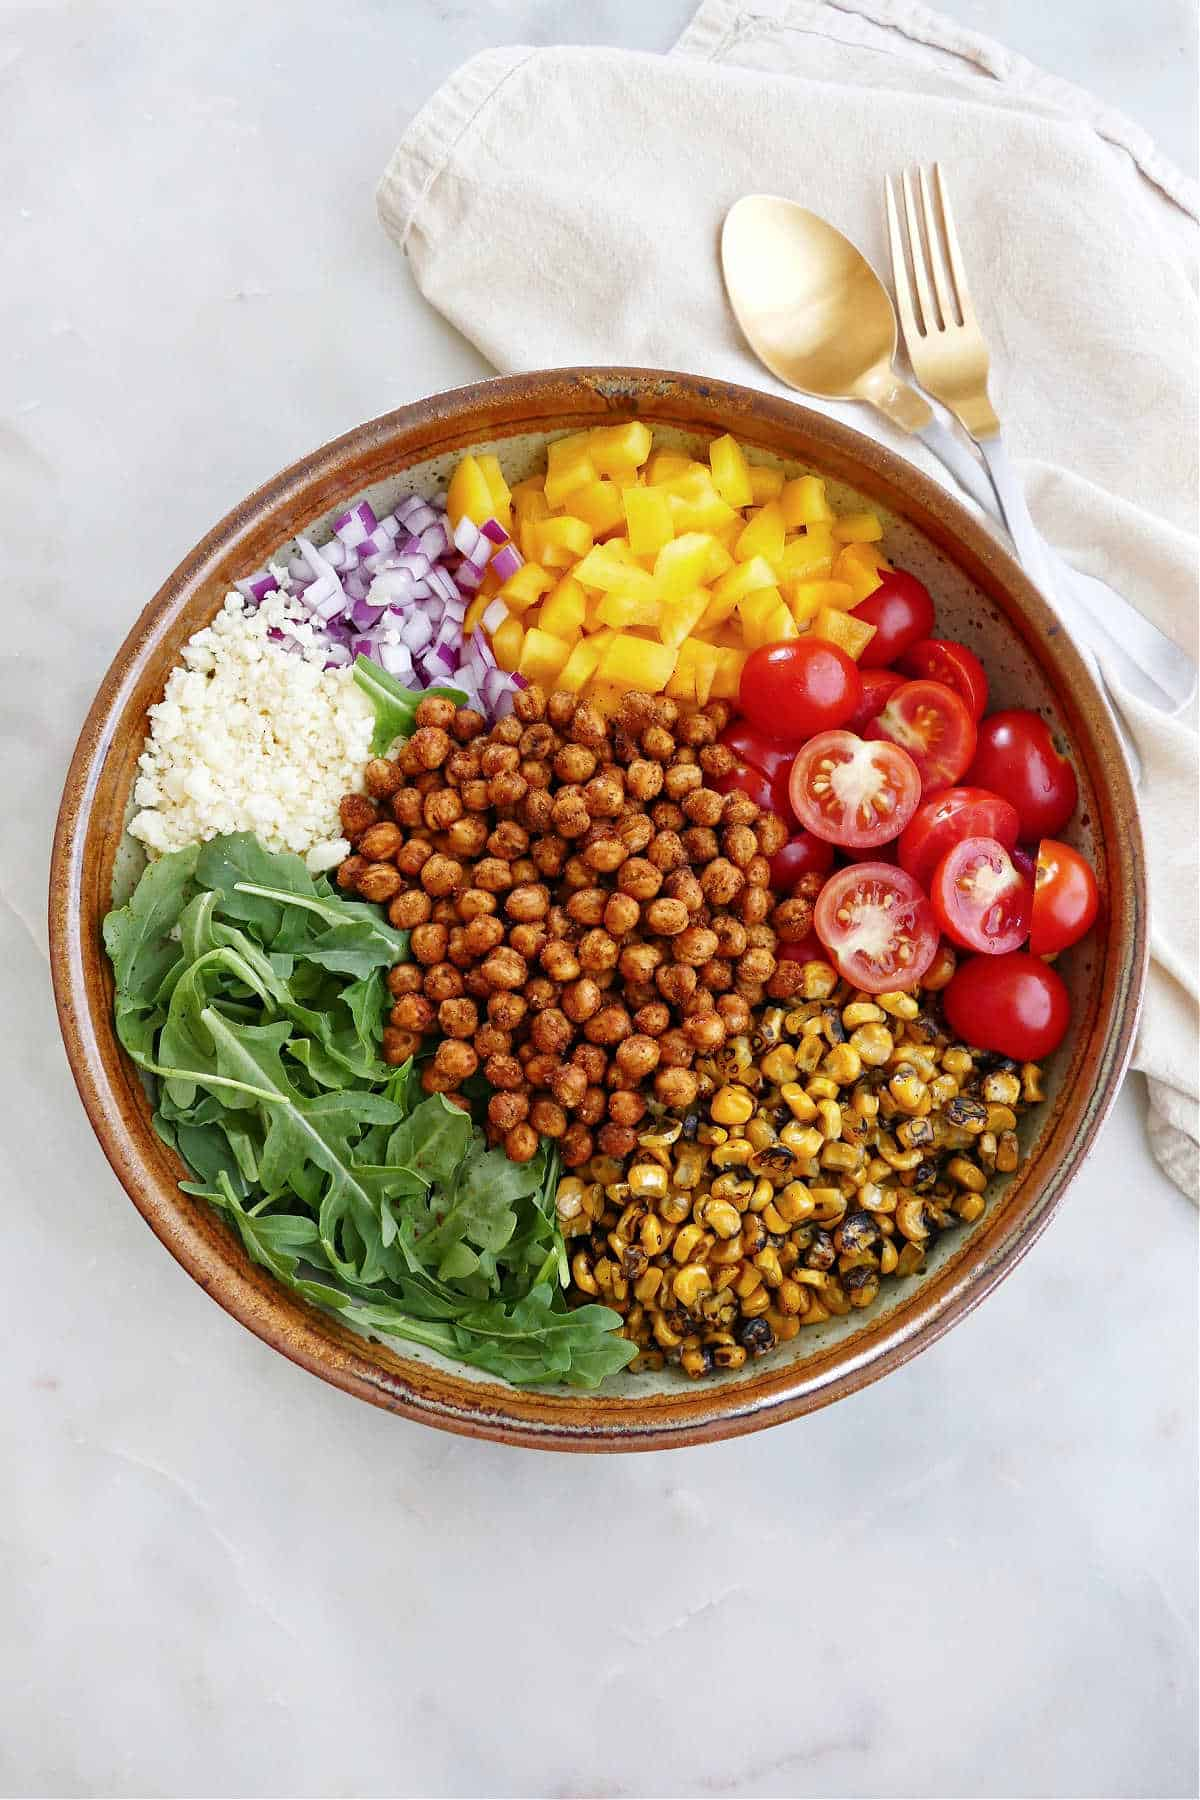 arugula, roasted chickpeas, corn, tomatoes, pepper, onion, and cheese in a large serving bowl